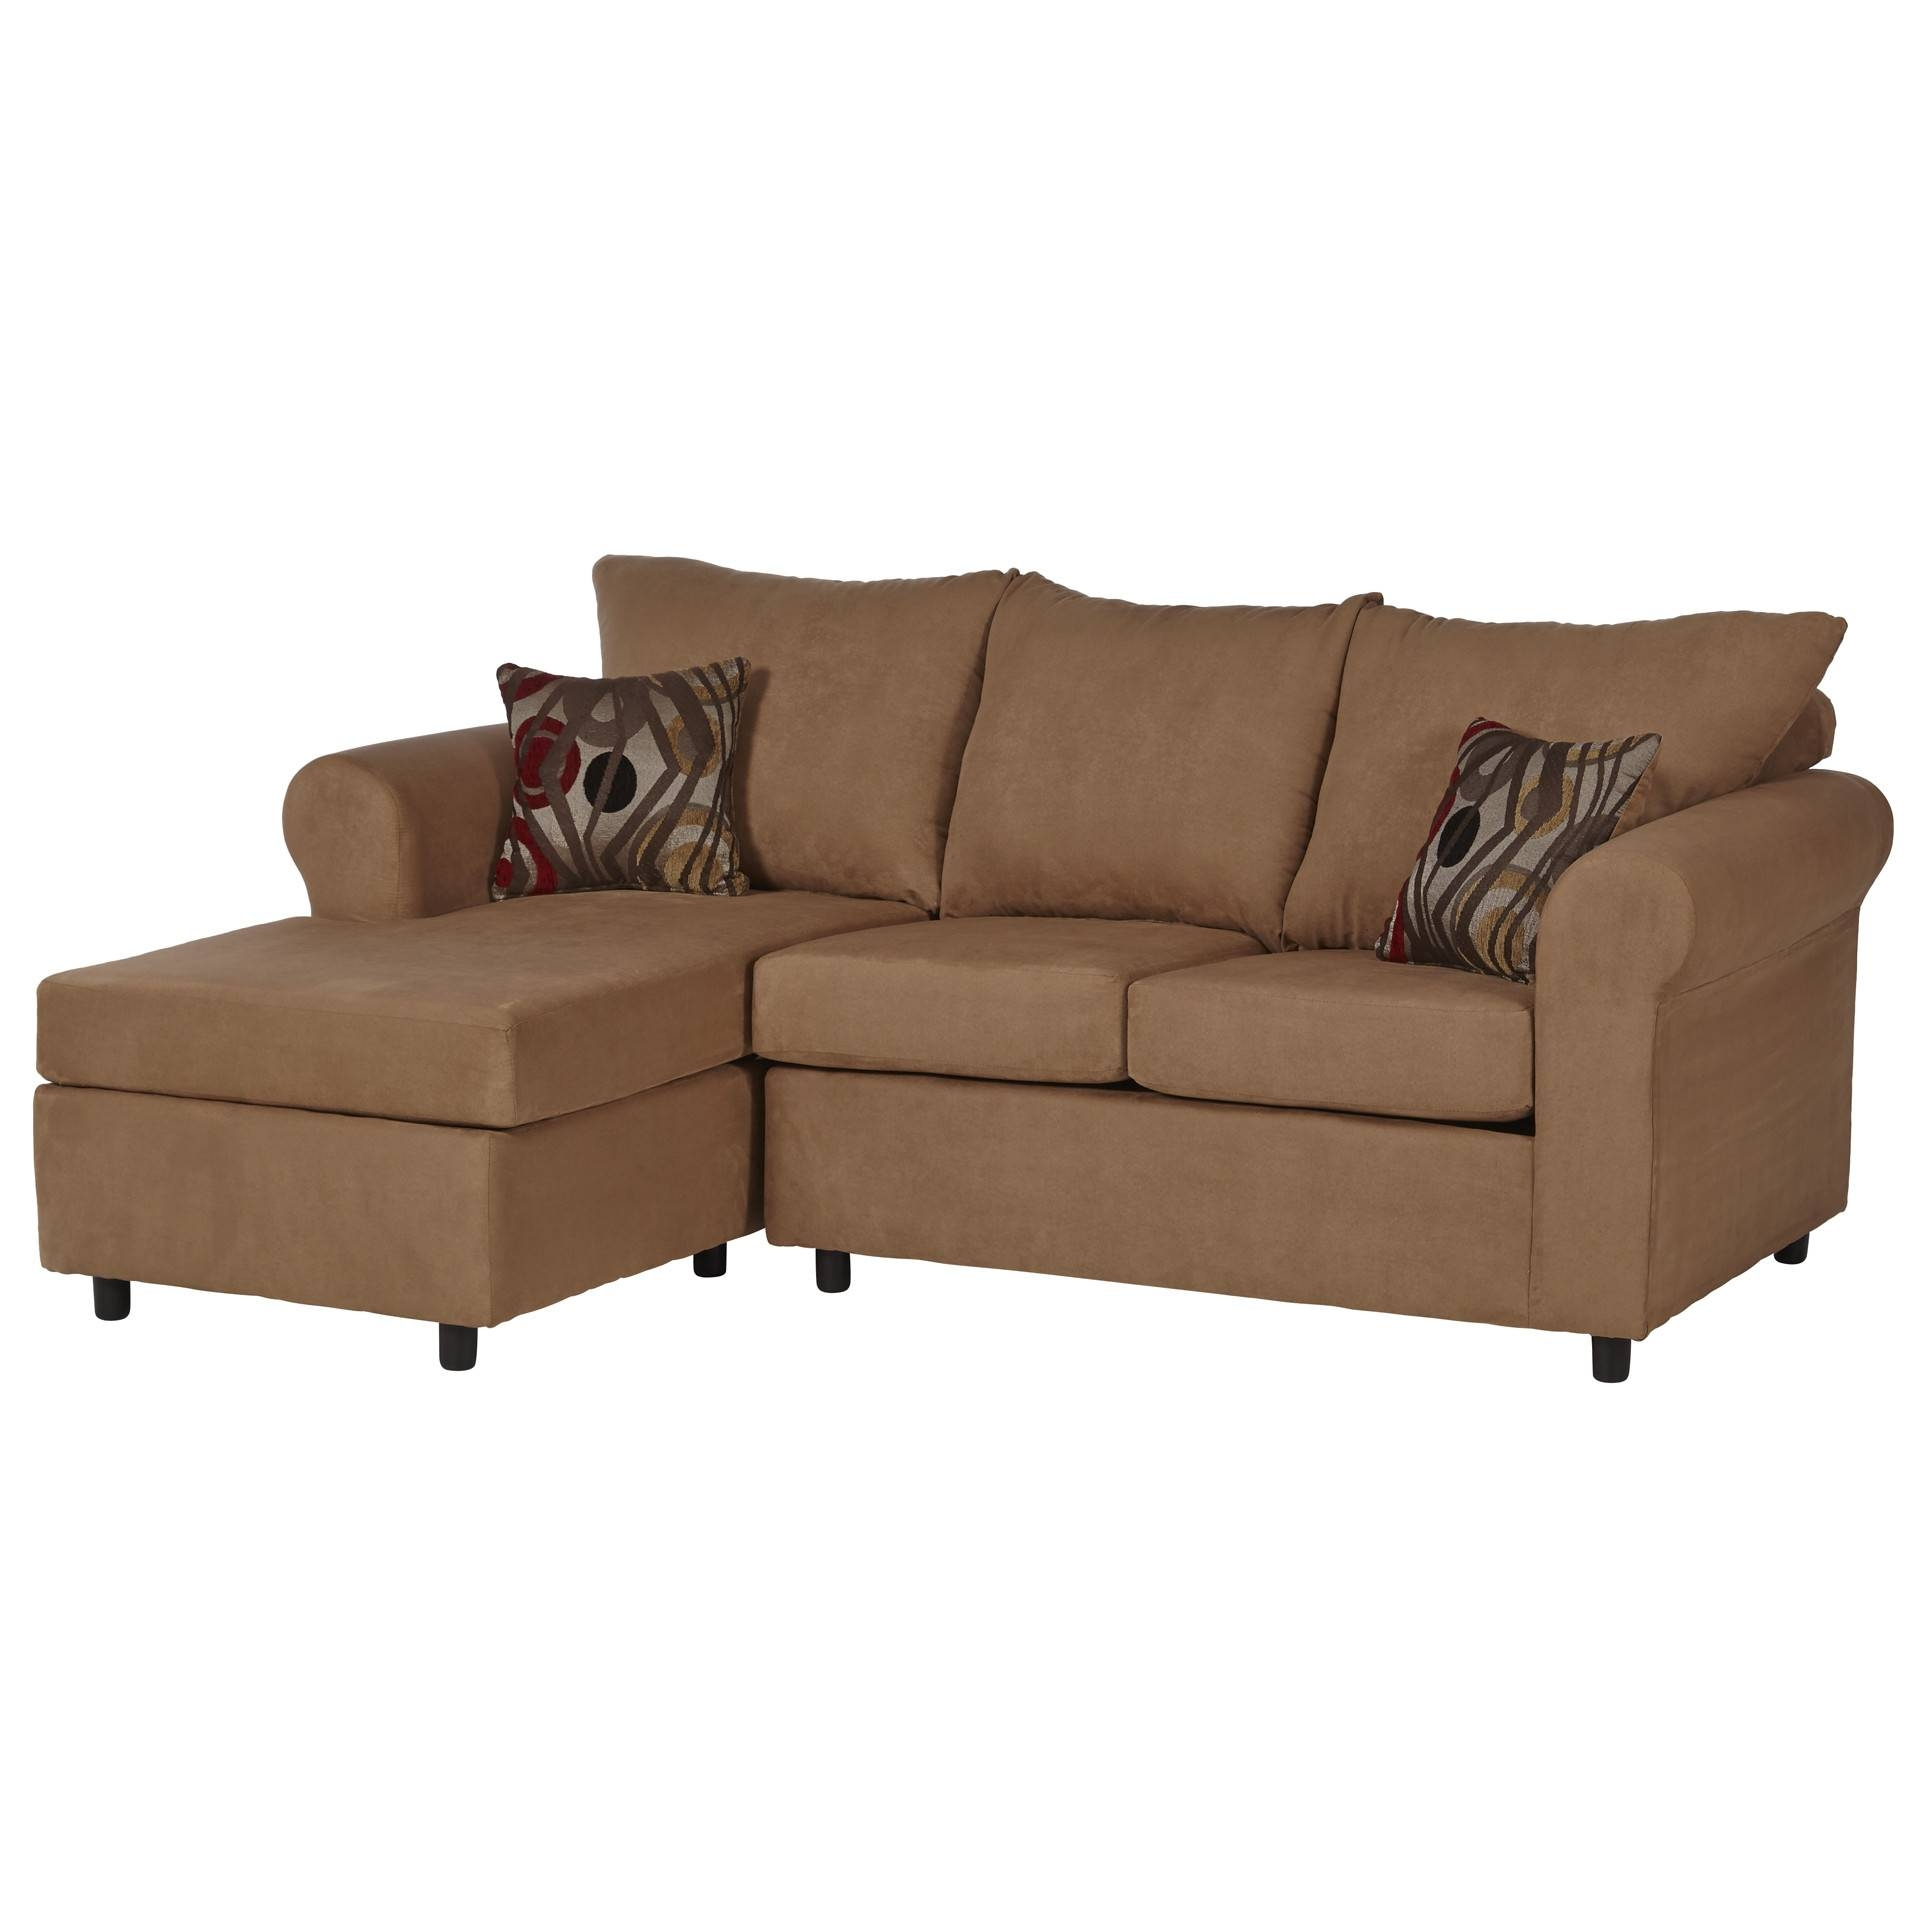 Sectional Sofa Design : Best Collection Sectional Pit Sofa throughout Pit Sofas (Image 17 of 30)